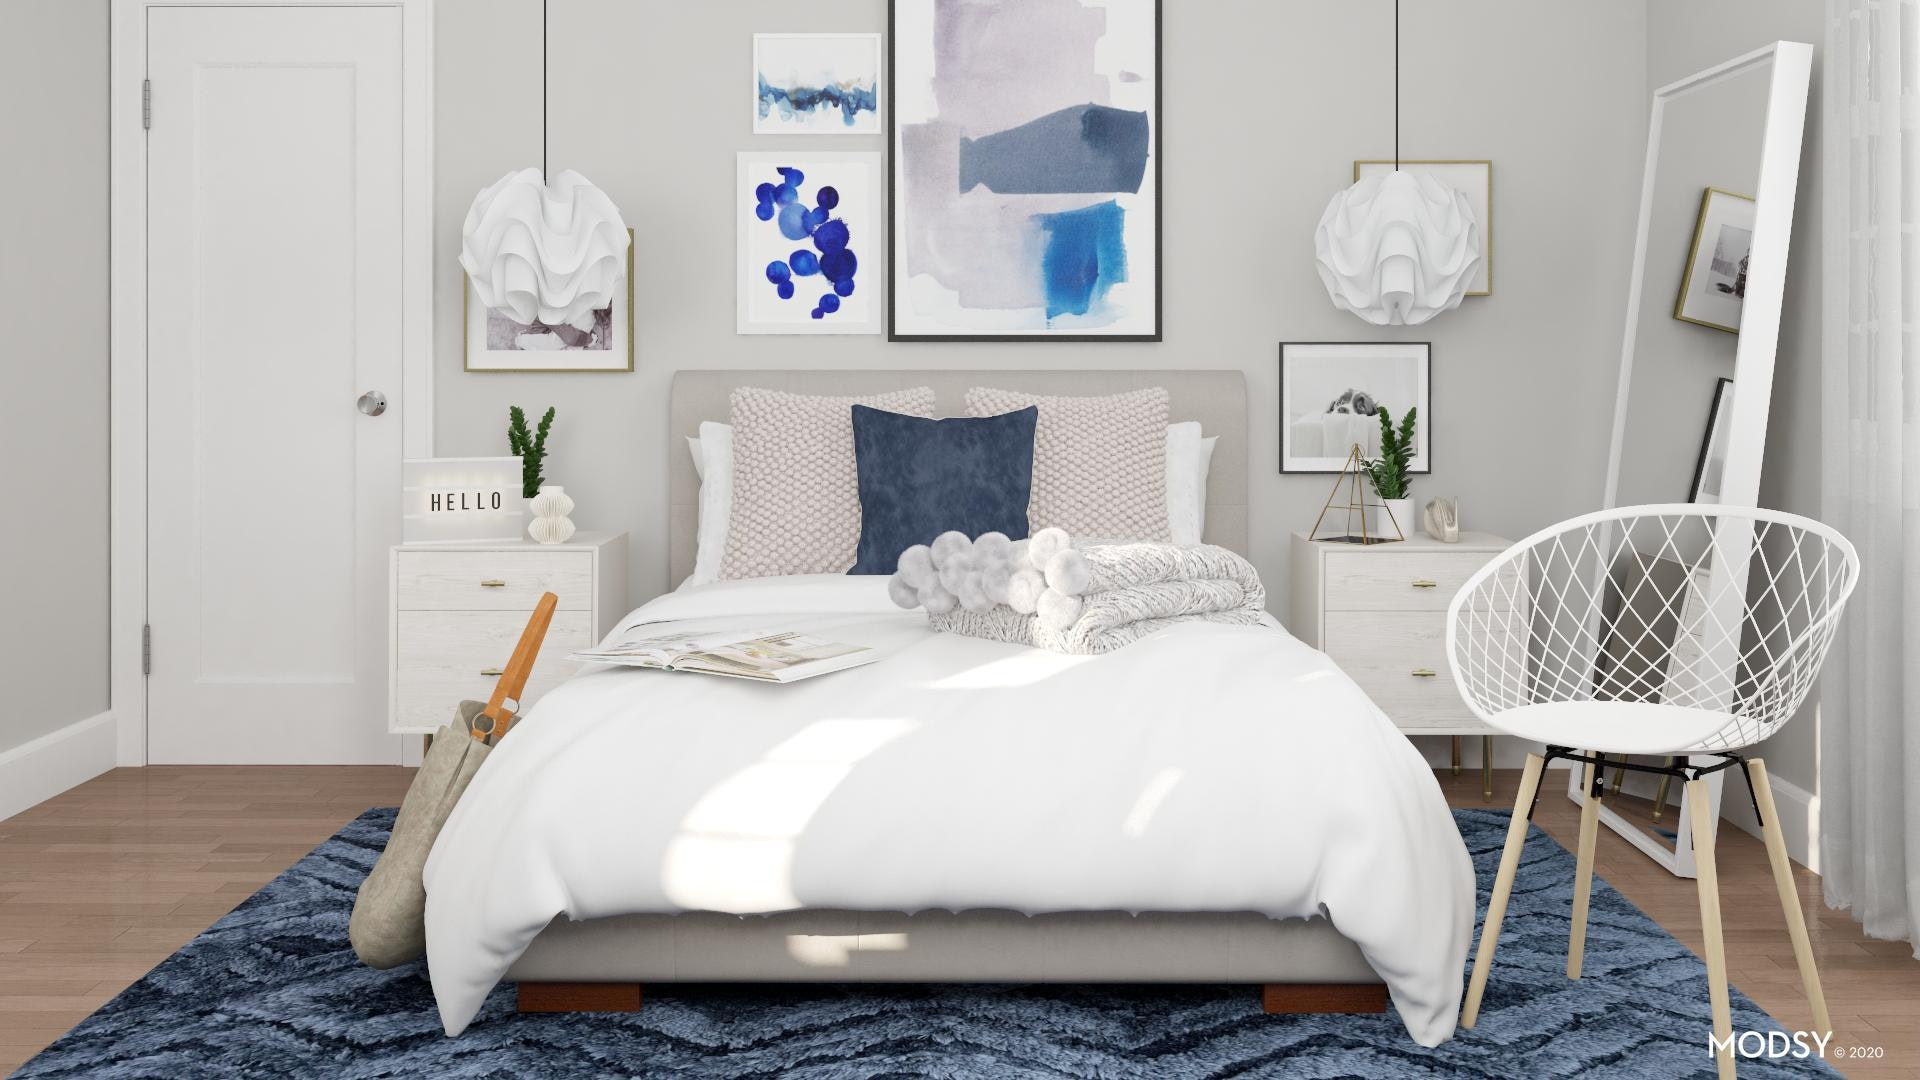 Modern Kid S Room Design Ideas And Styles From Modsy Designers